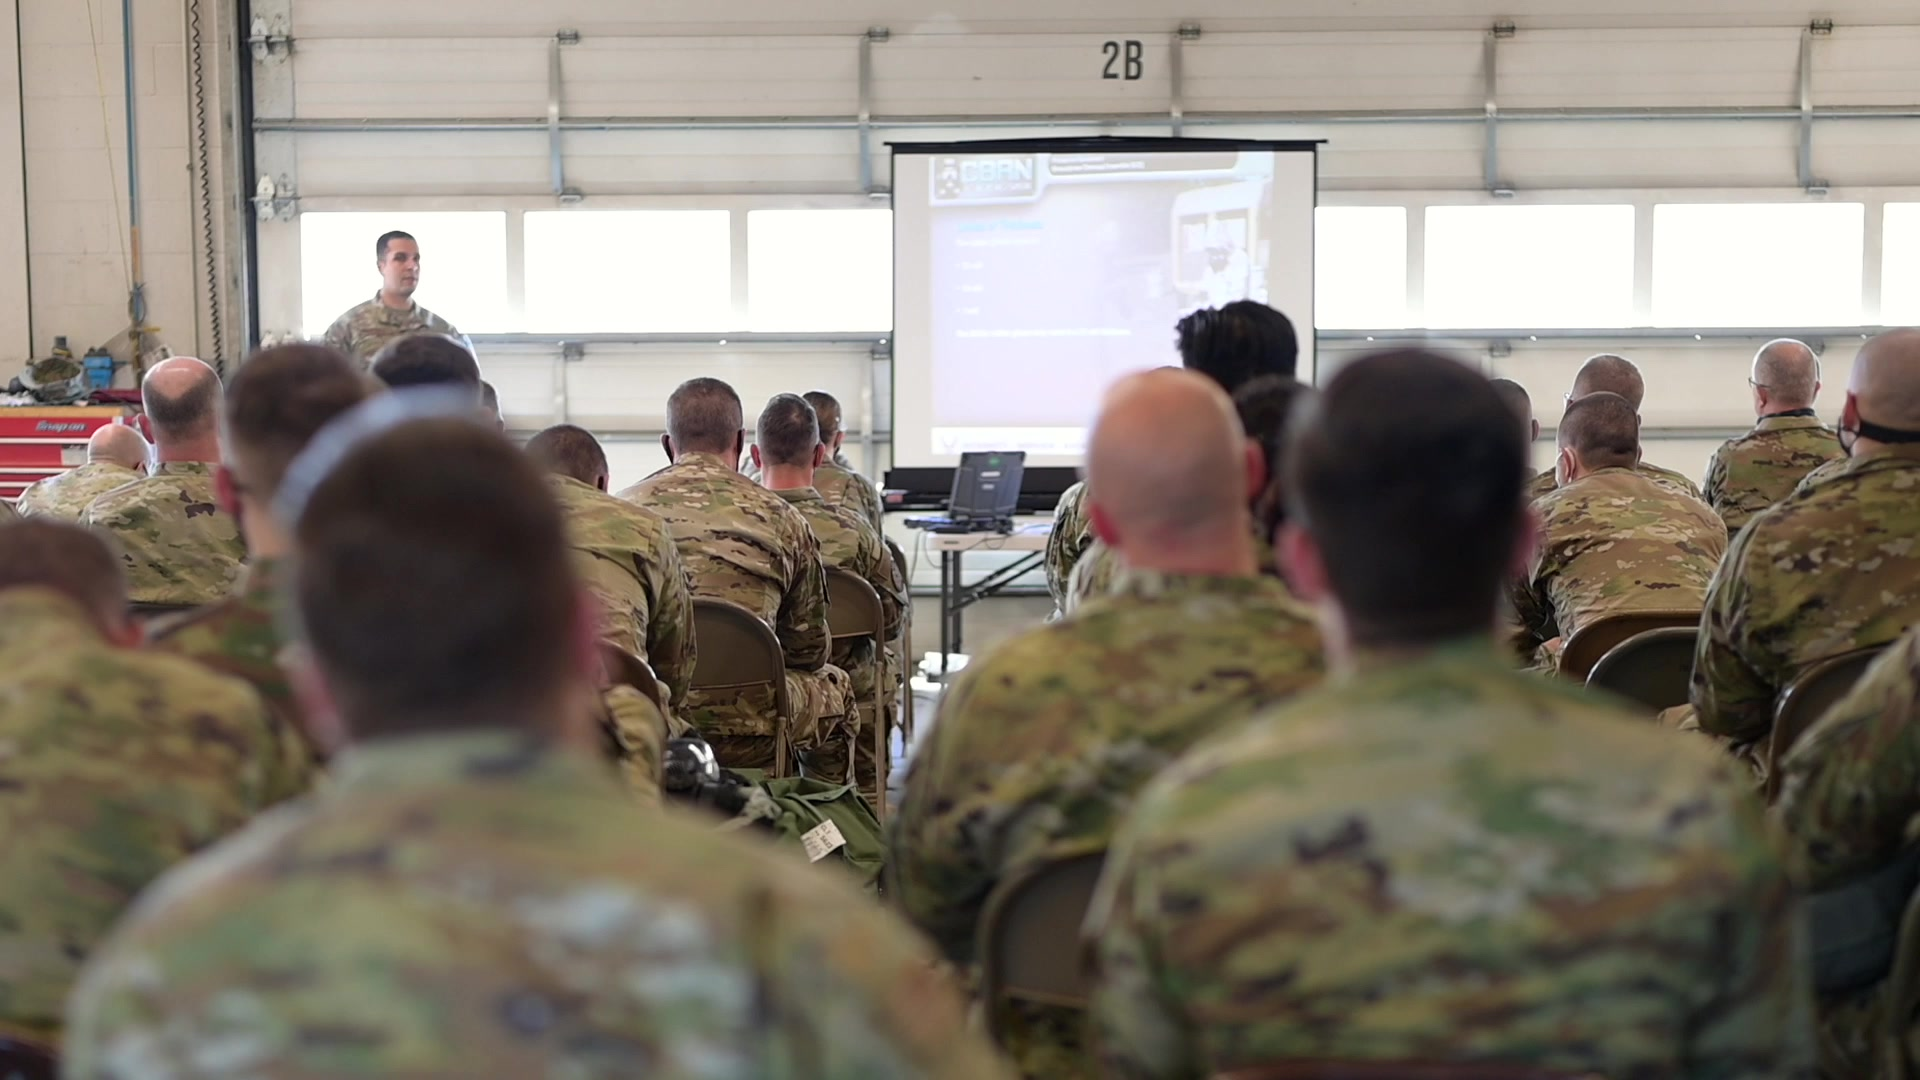 For this month's On Drill we highlight some members from the Vermont Air National Guard who participated in a readiness skills simulation training. This ensures these Green Mountain Boys are ready to go when the moment arises.